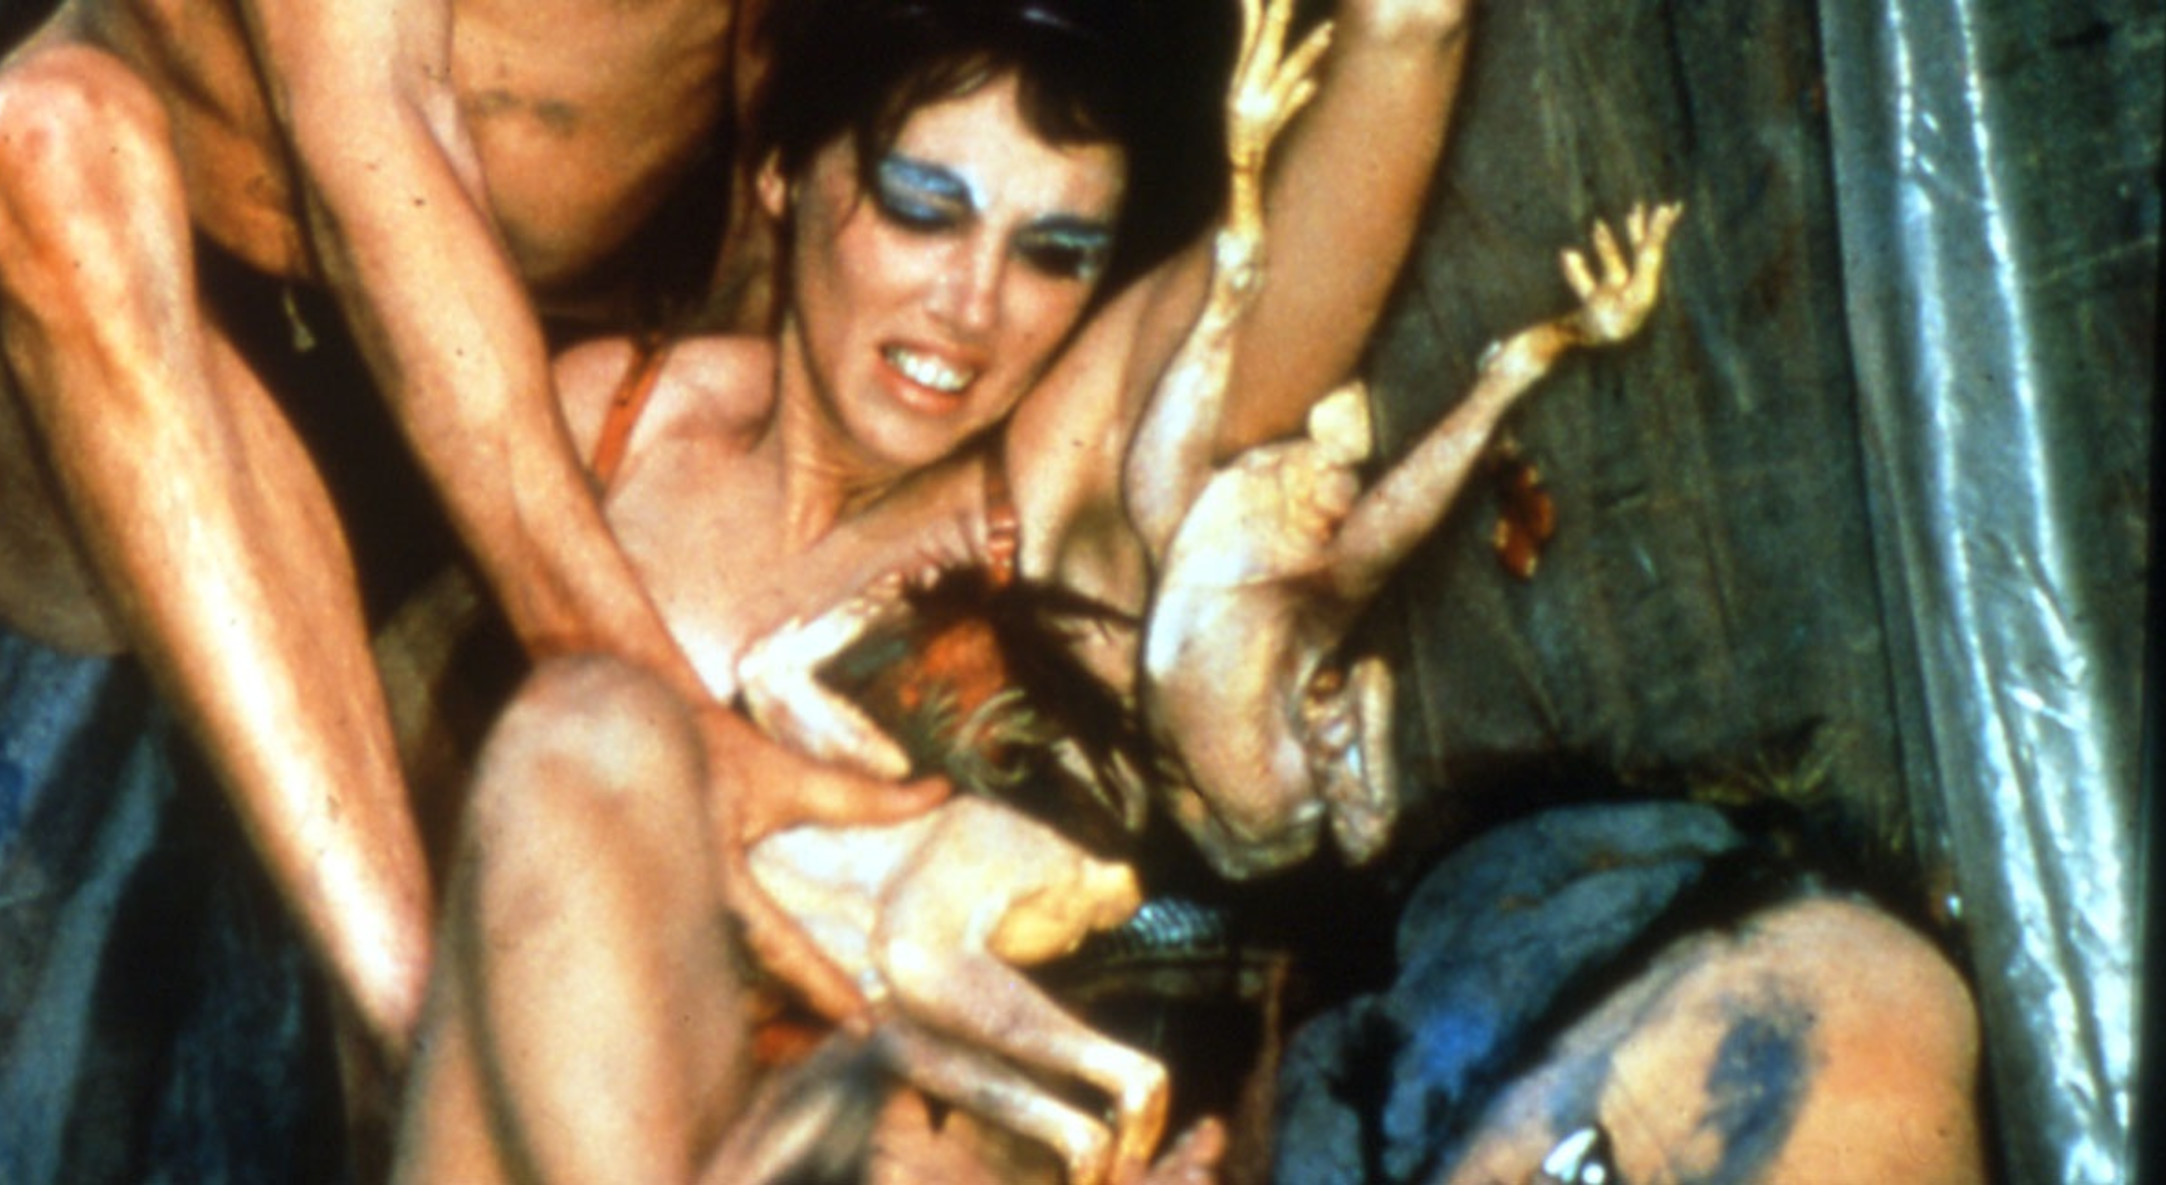 Carolee Schneemann, 'Meat Joy', 1964. Photograph of performance at Judson Church, NYC [photograph taken by Al Giese].